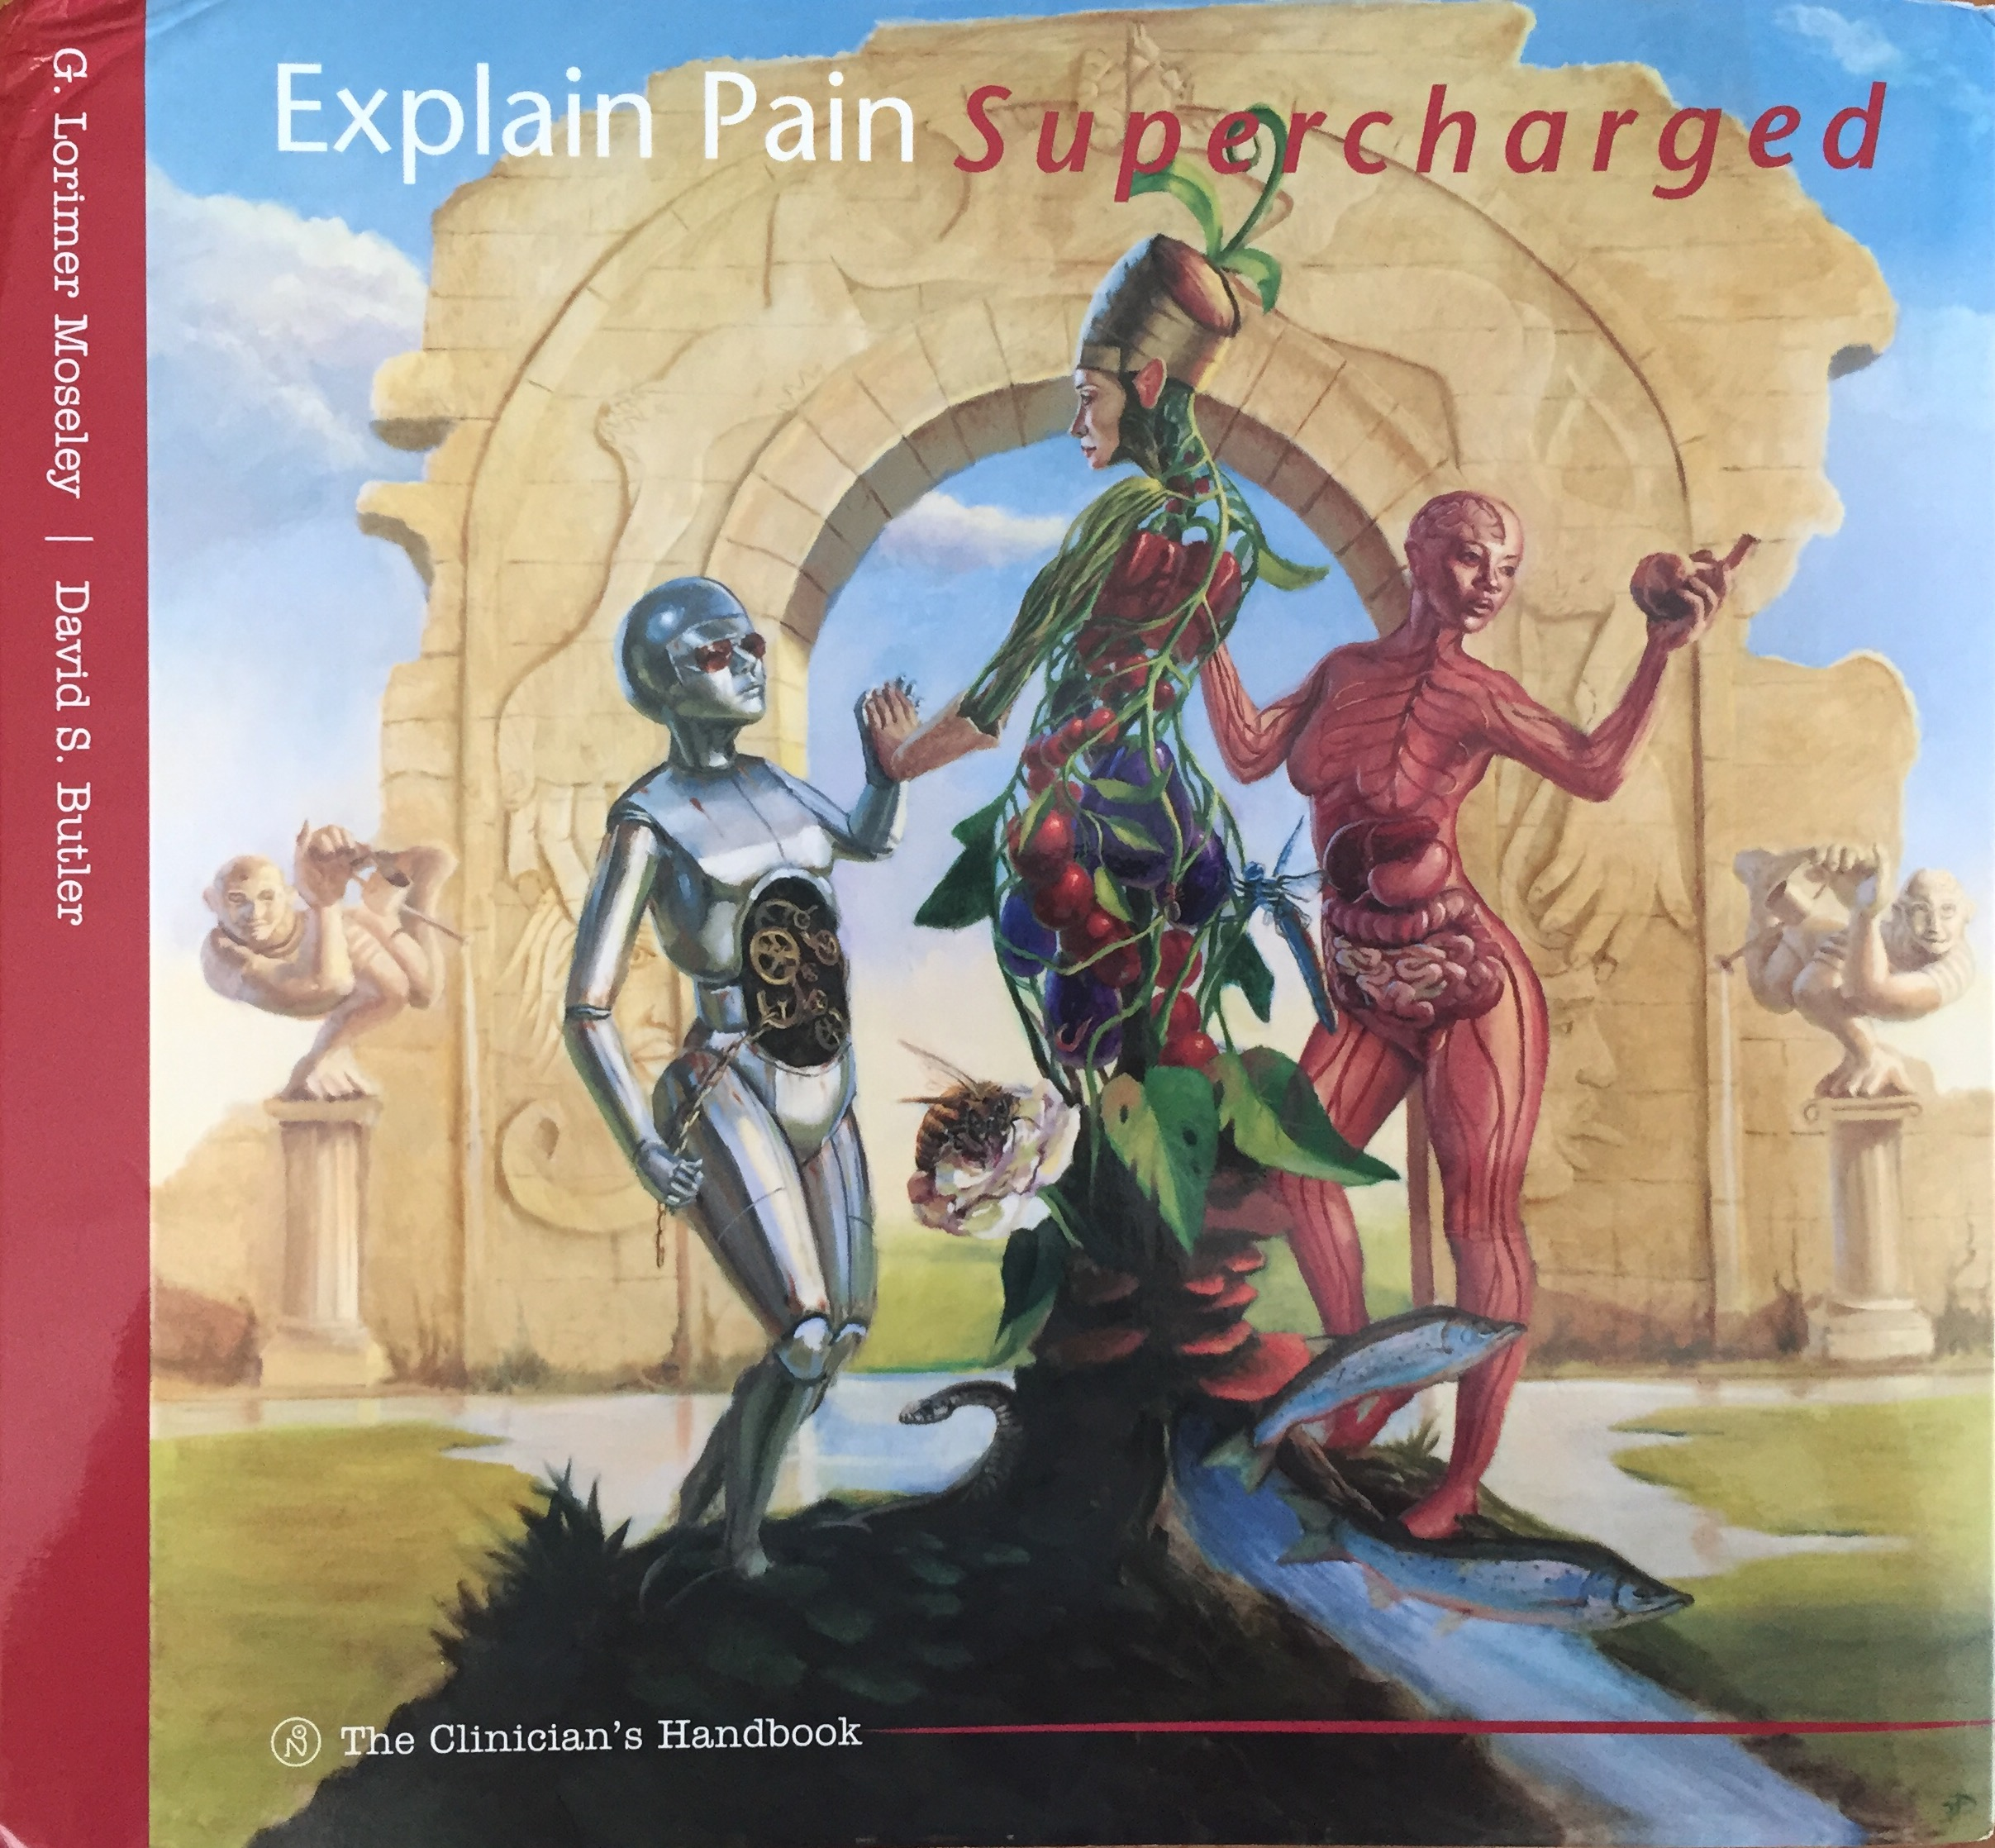 Book Review: Explain Pain Supercharged